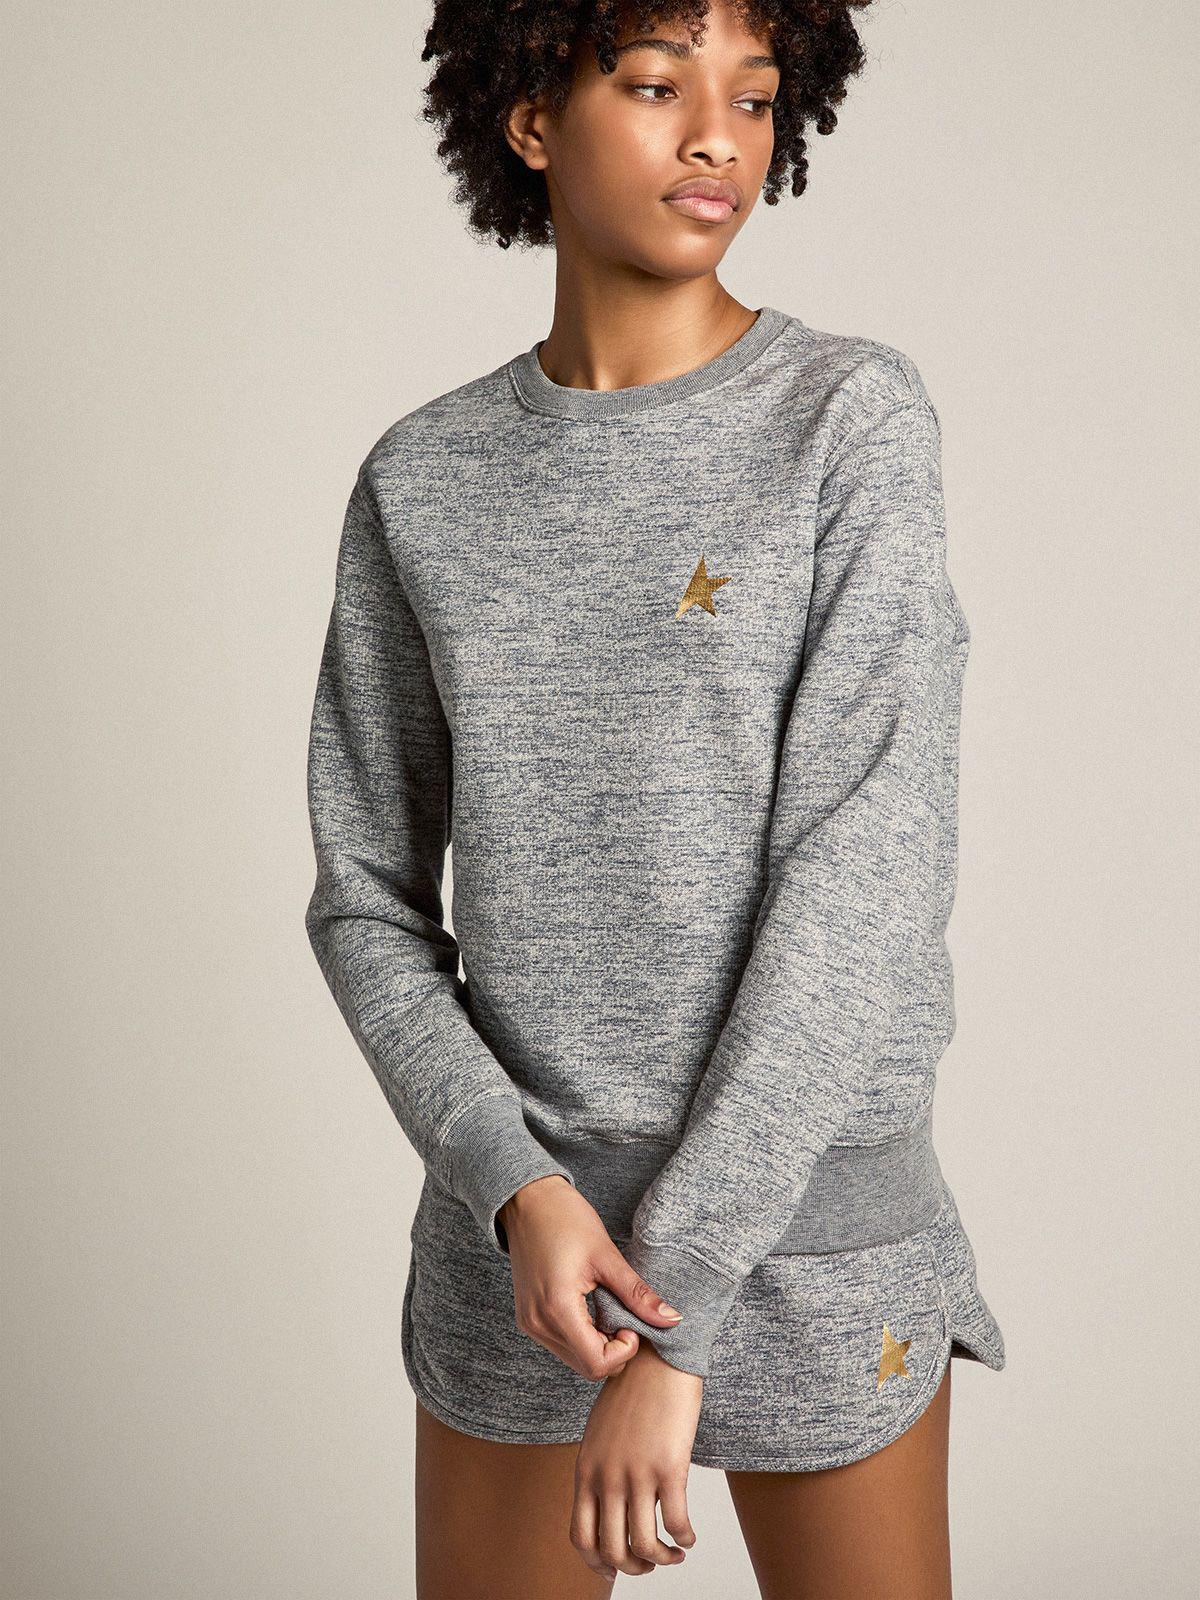 Melange gray Athena Star Collection sweatshirt with gold star on the front